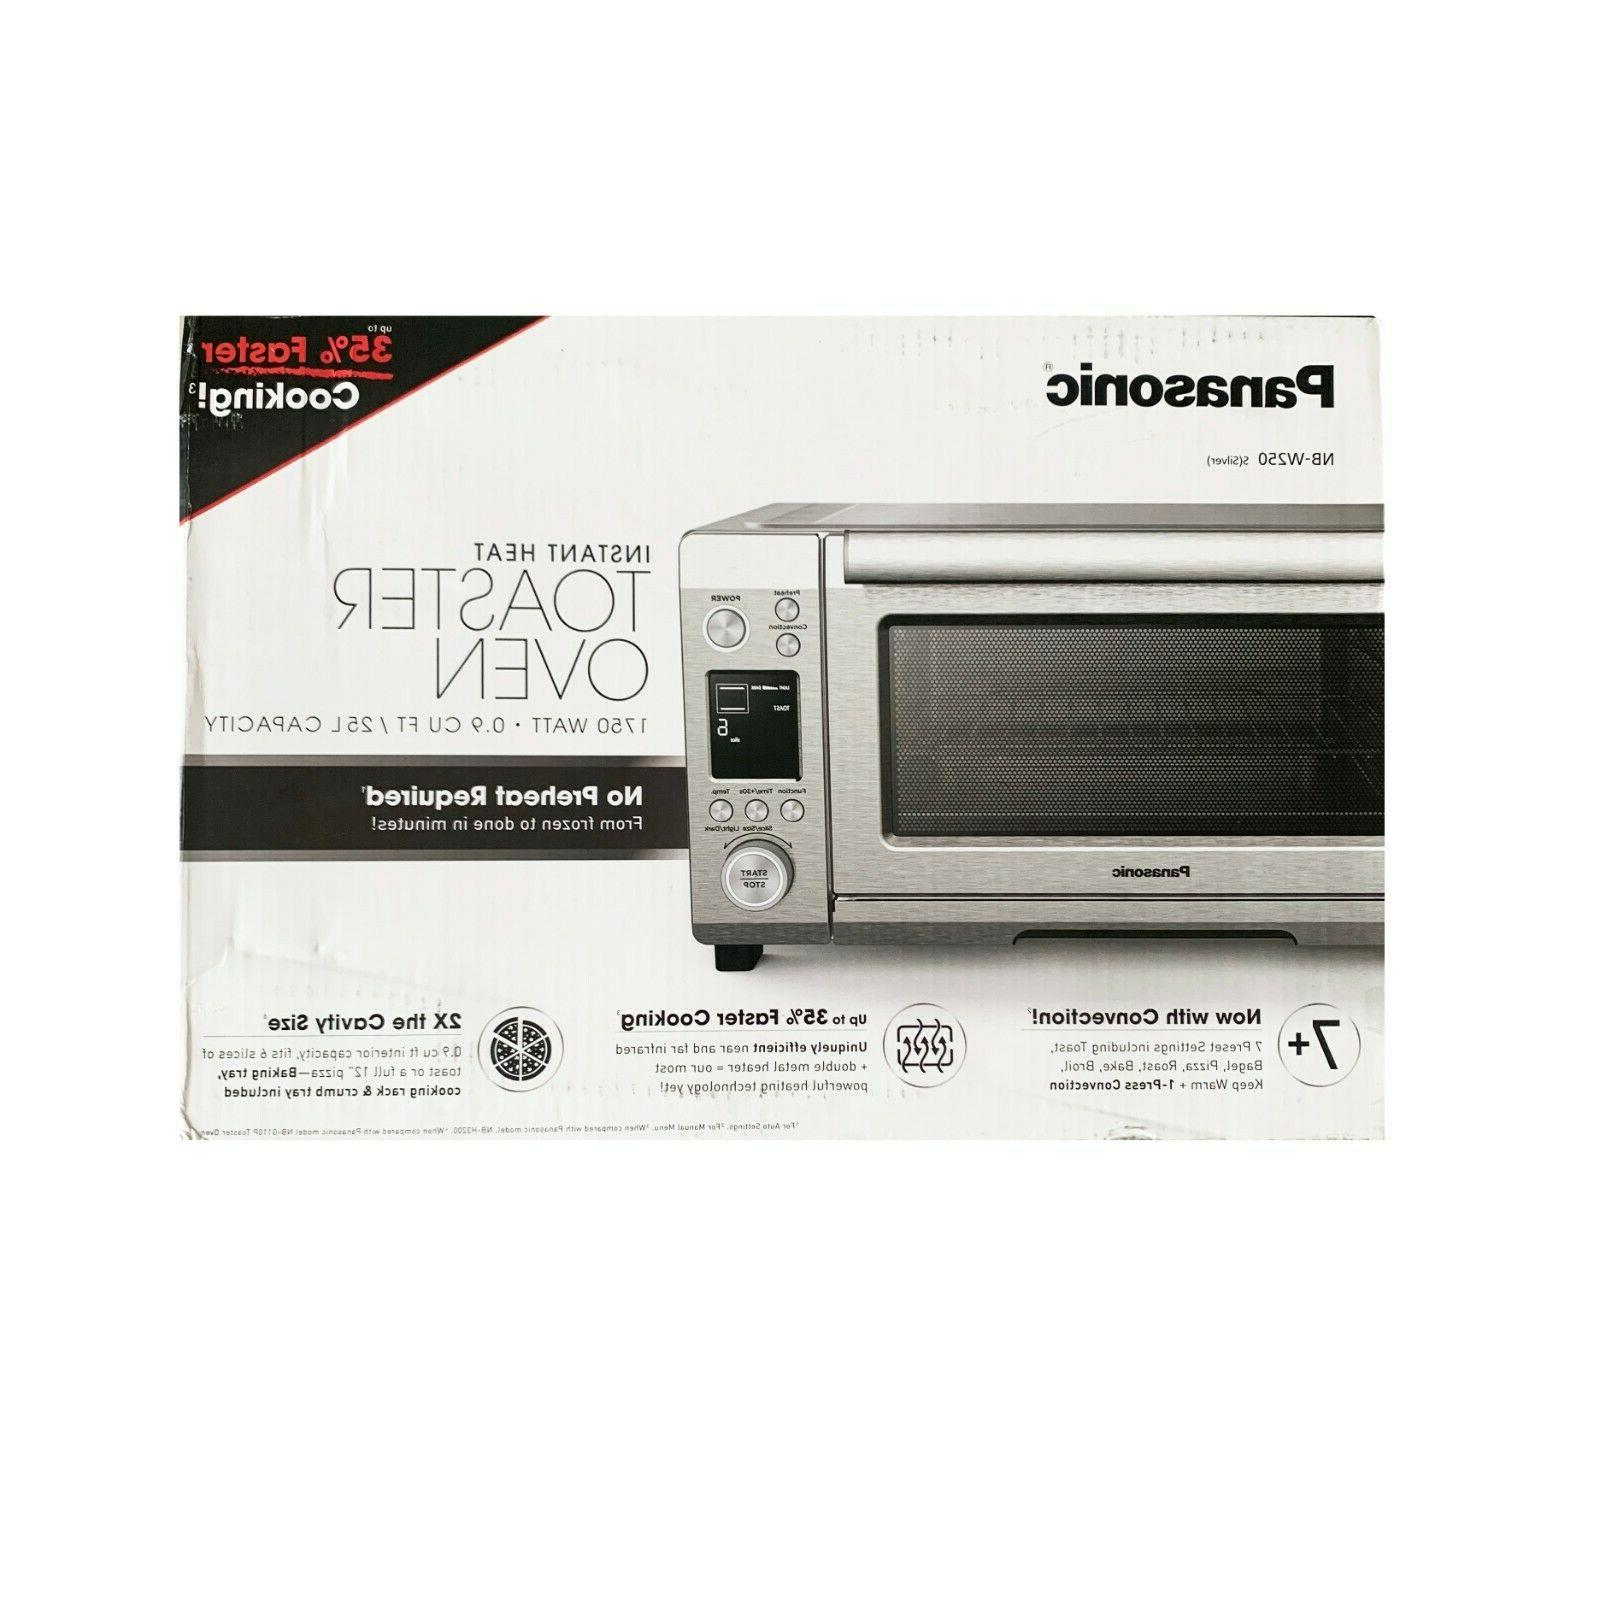 high speed convection toaster oven with no